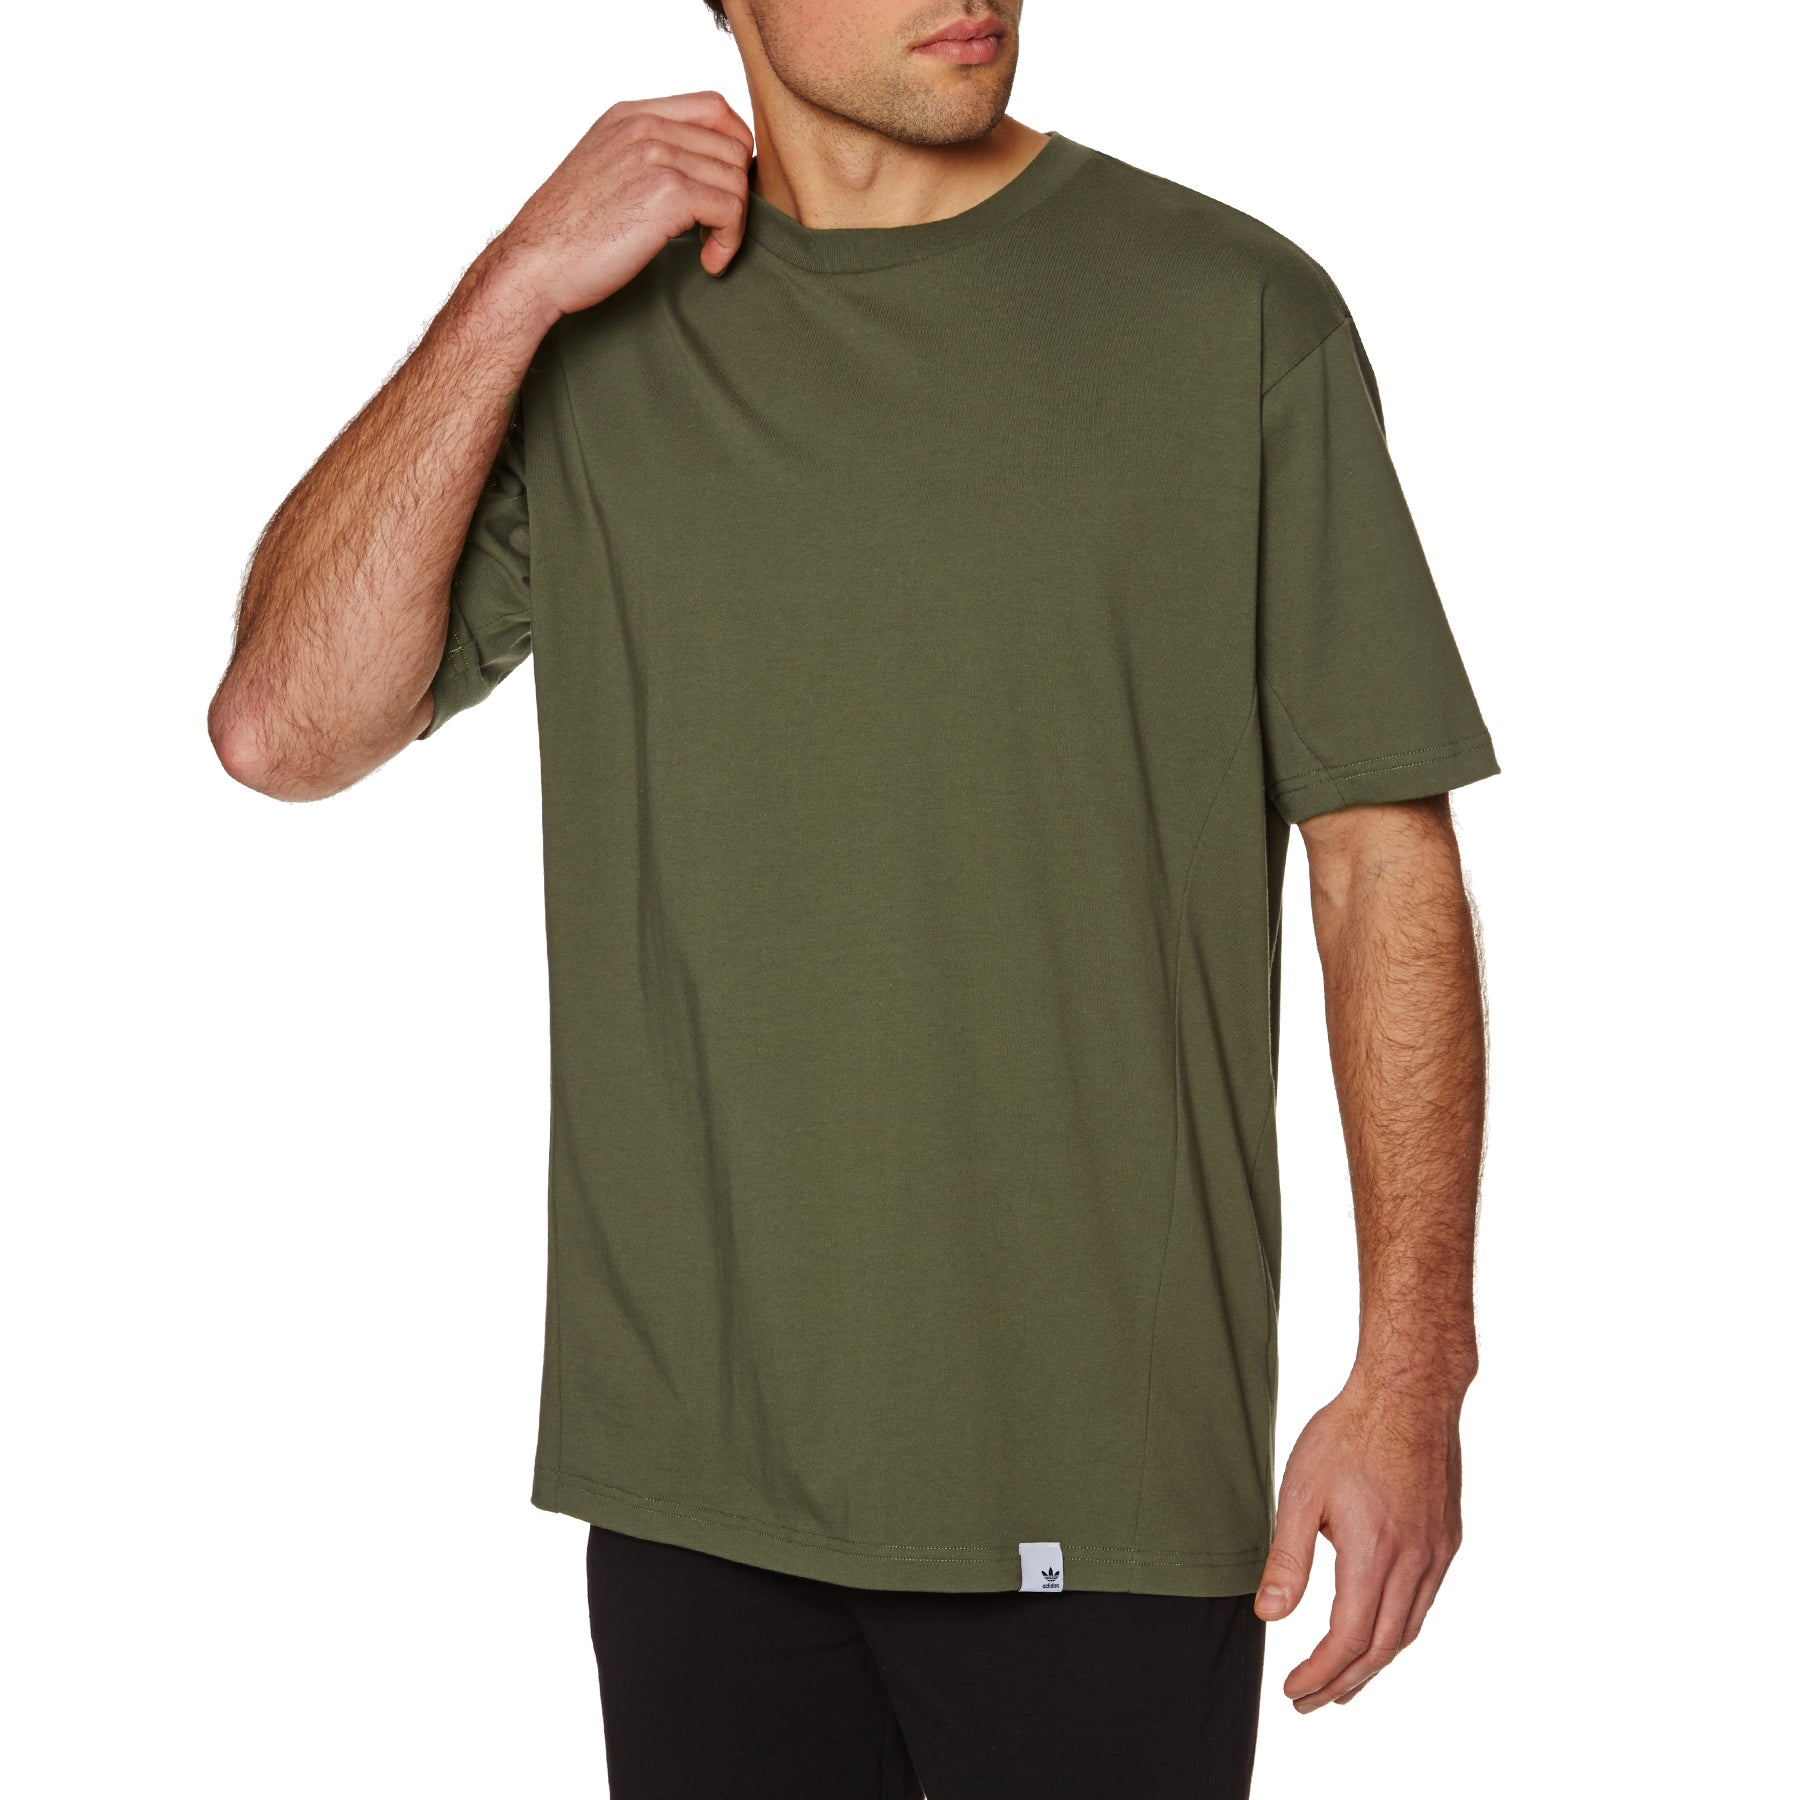 Adidas Originals X By O Short Sleeve T-Shirt - Olive Cargo F16